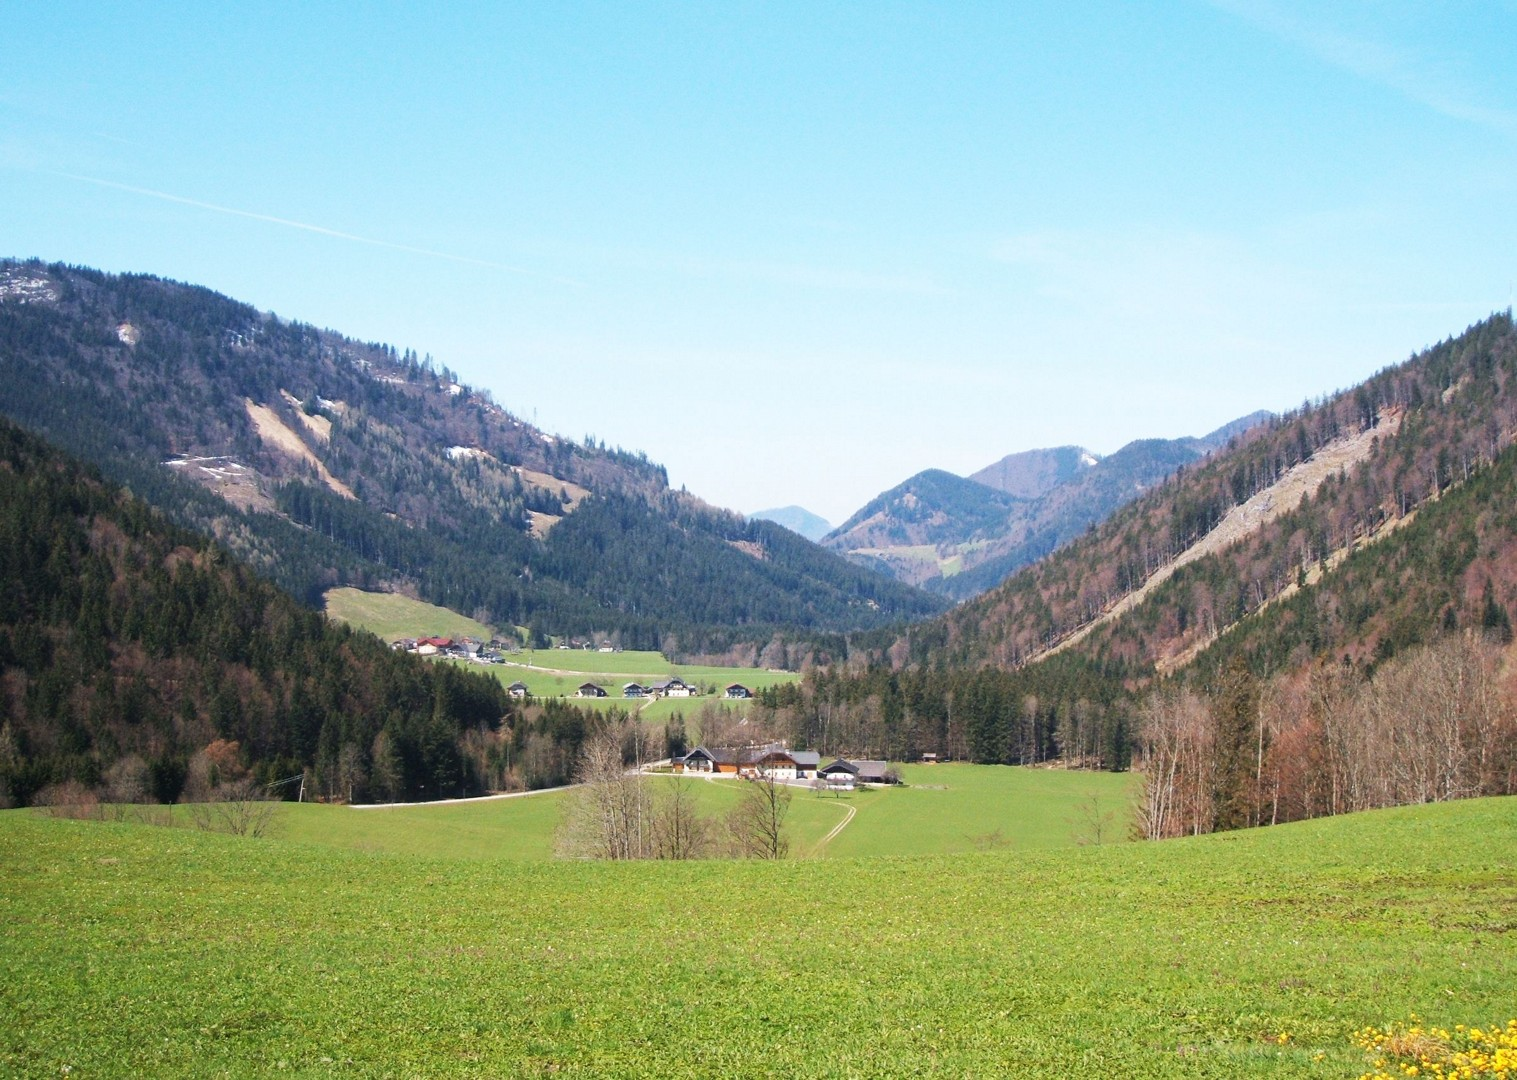 austrian-ten-lakes-tour-family-cycling-holiday.jpg - Austria - Ten Lakes Tour - Self-Guided Family Cycling Holiday - Family Cycling